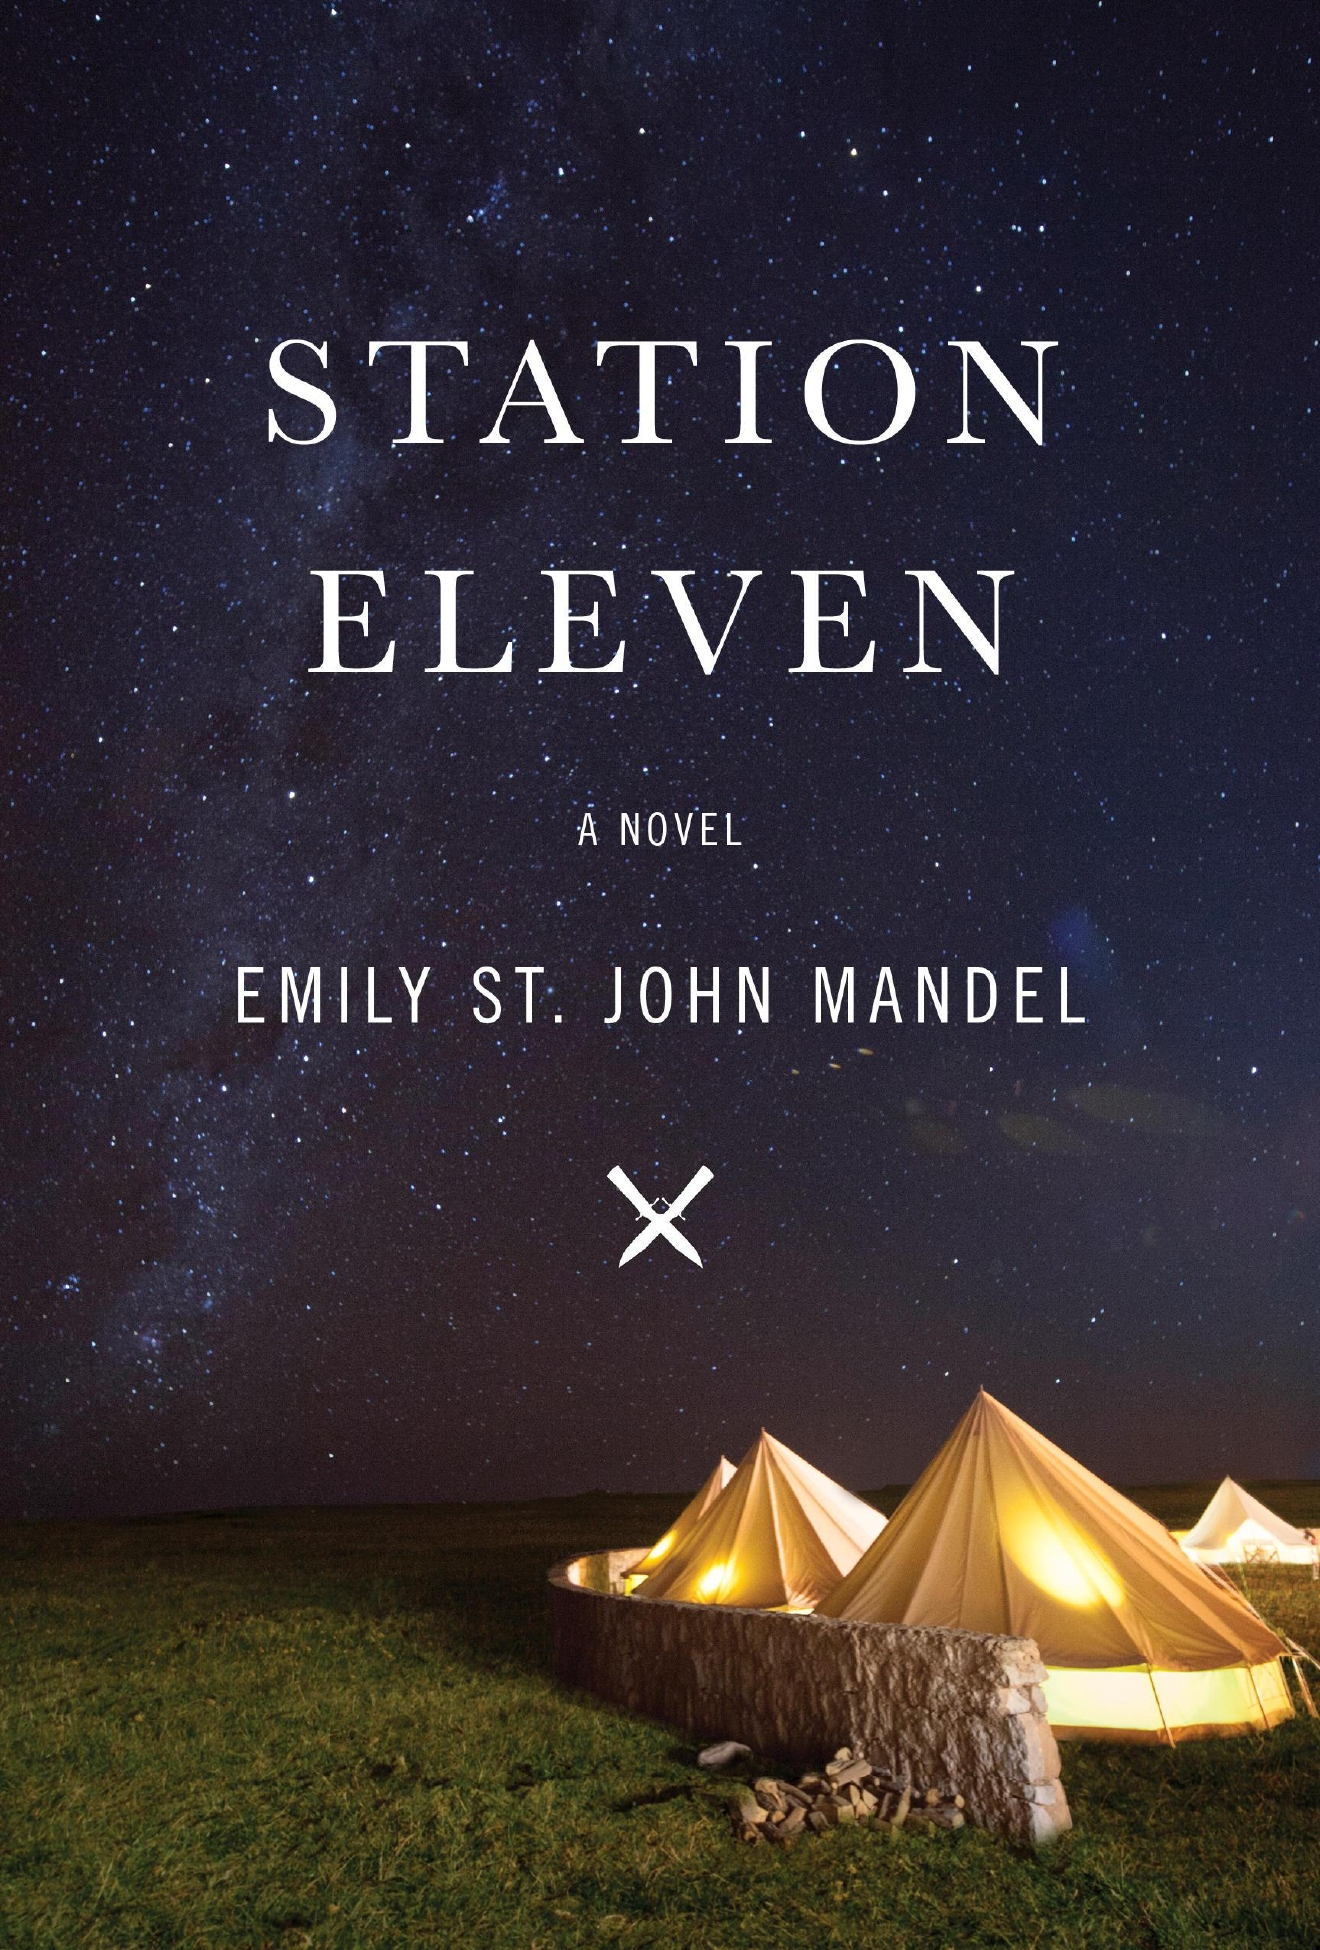 "Some books, no matter how good they eventually are, take a few chapters to hook the reader. But luckily, ""Station Eleven"" is so captivating, you won't want to put it down from start to finish. Fair warning, if you're a germaphobe you might want to skip this one. (Photo: Knopf Doubleday Publishing Group)"